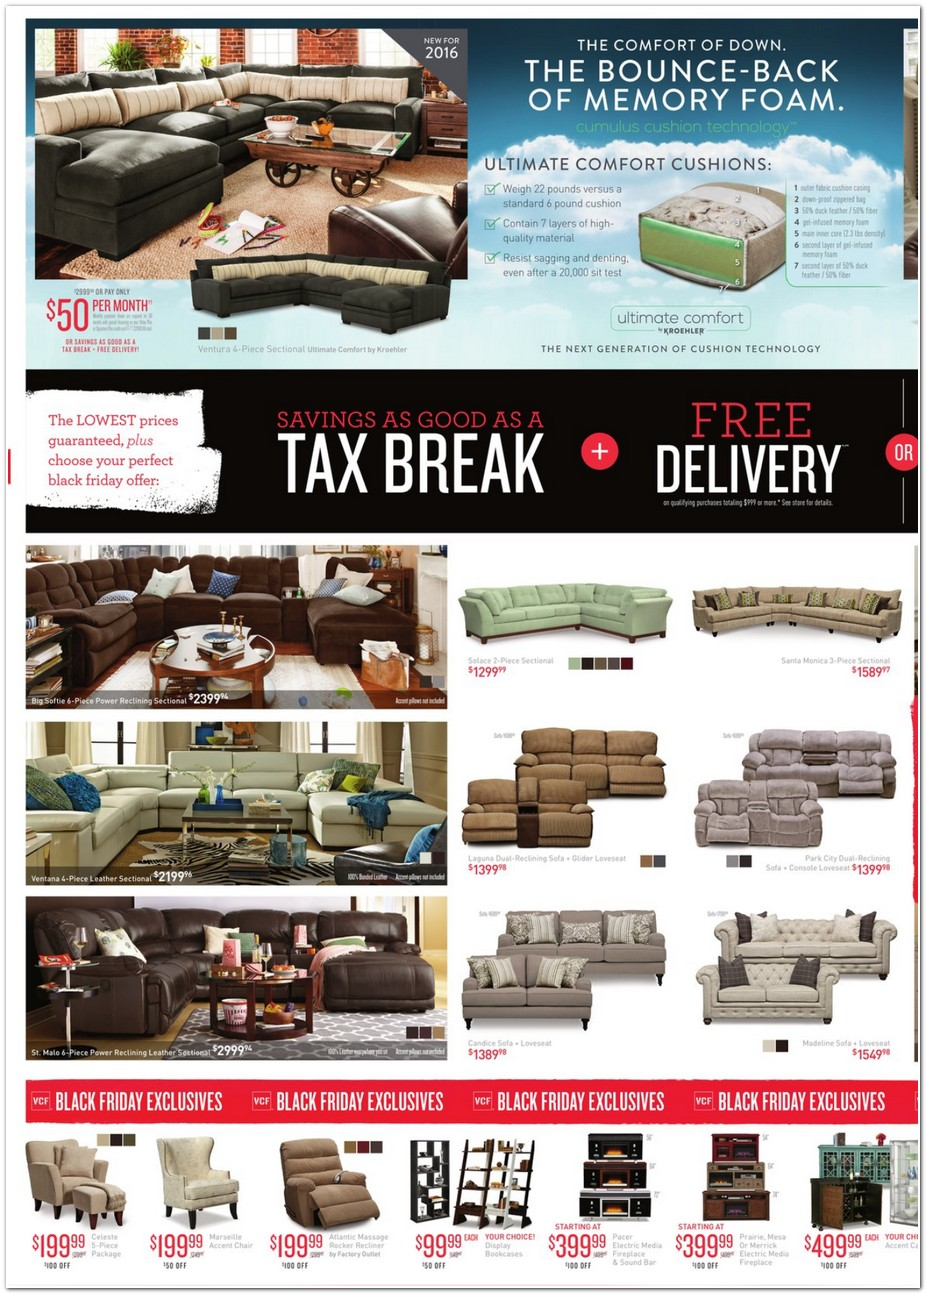 Lovely Value City Furniture 2015 Black Friday Ad   Black Friday Archive   Black  Friday Ads From The Past